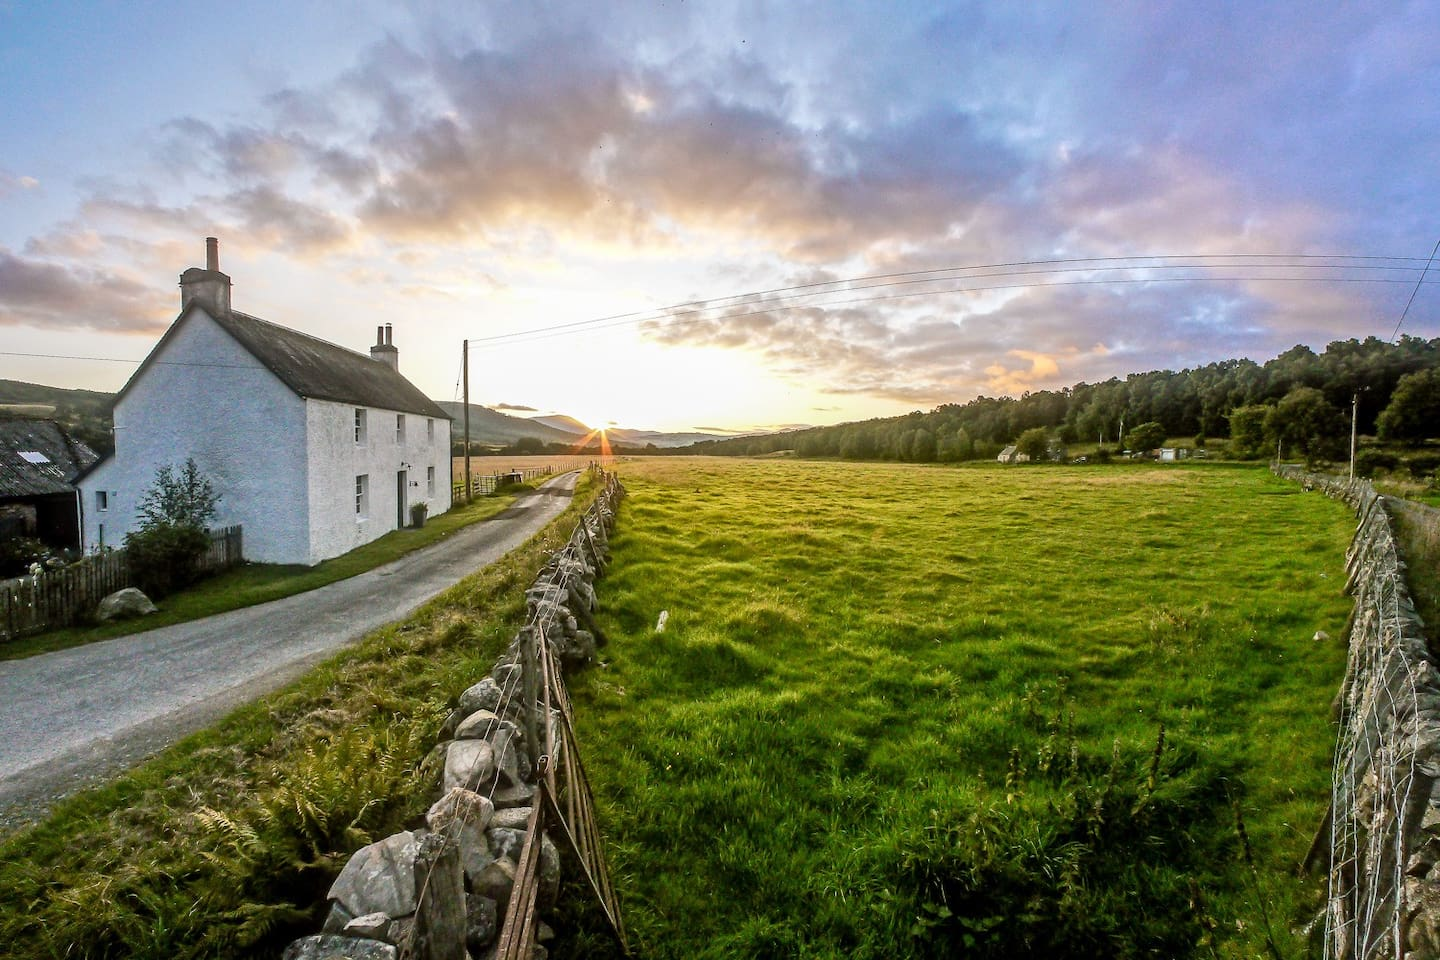 The Tranquil Scottish Farmhouse at sunrise.